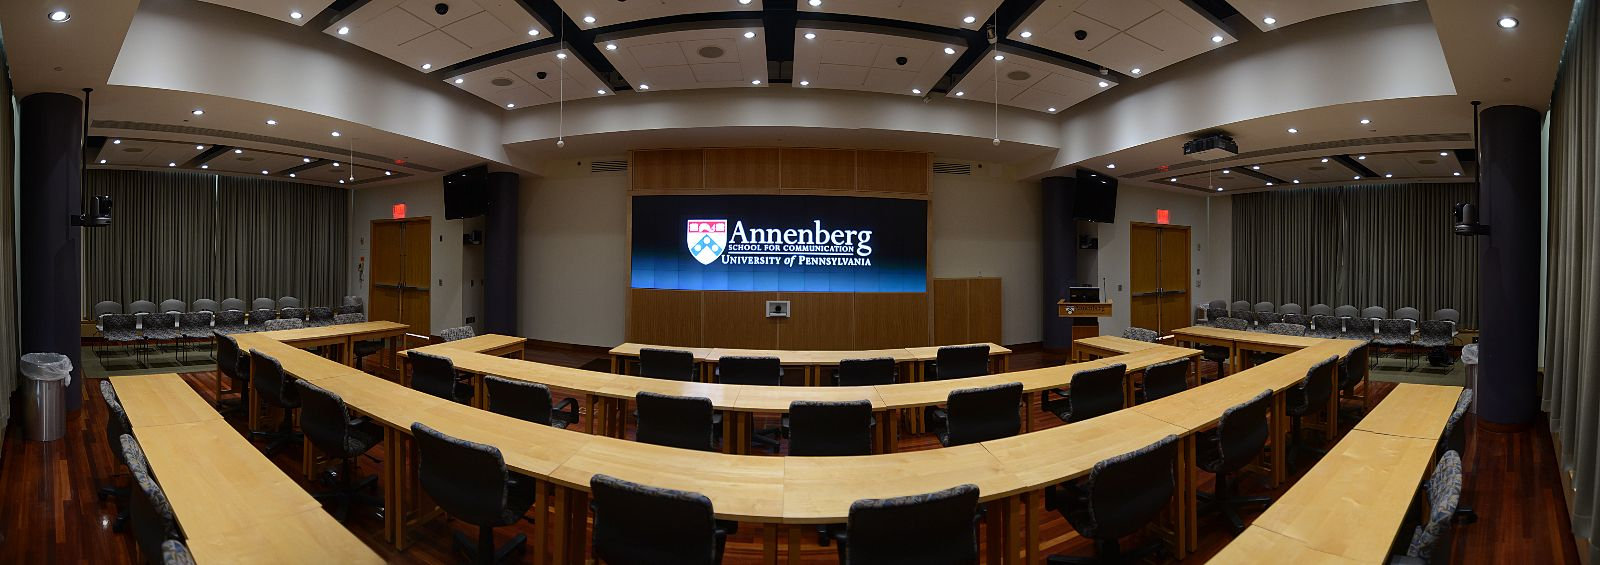 CASE STUDY: Annenberg School for Communication